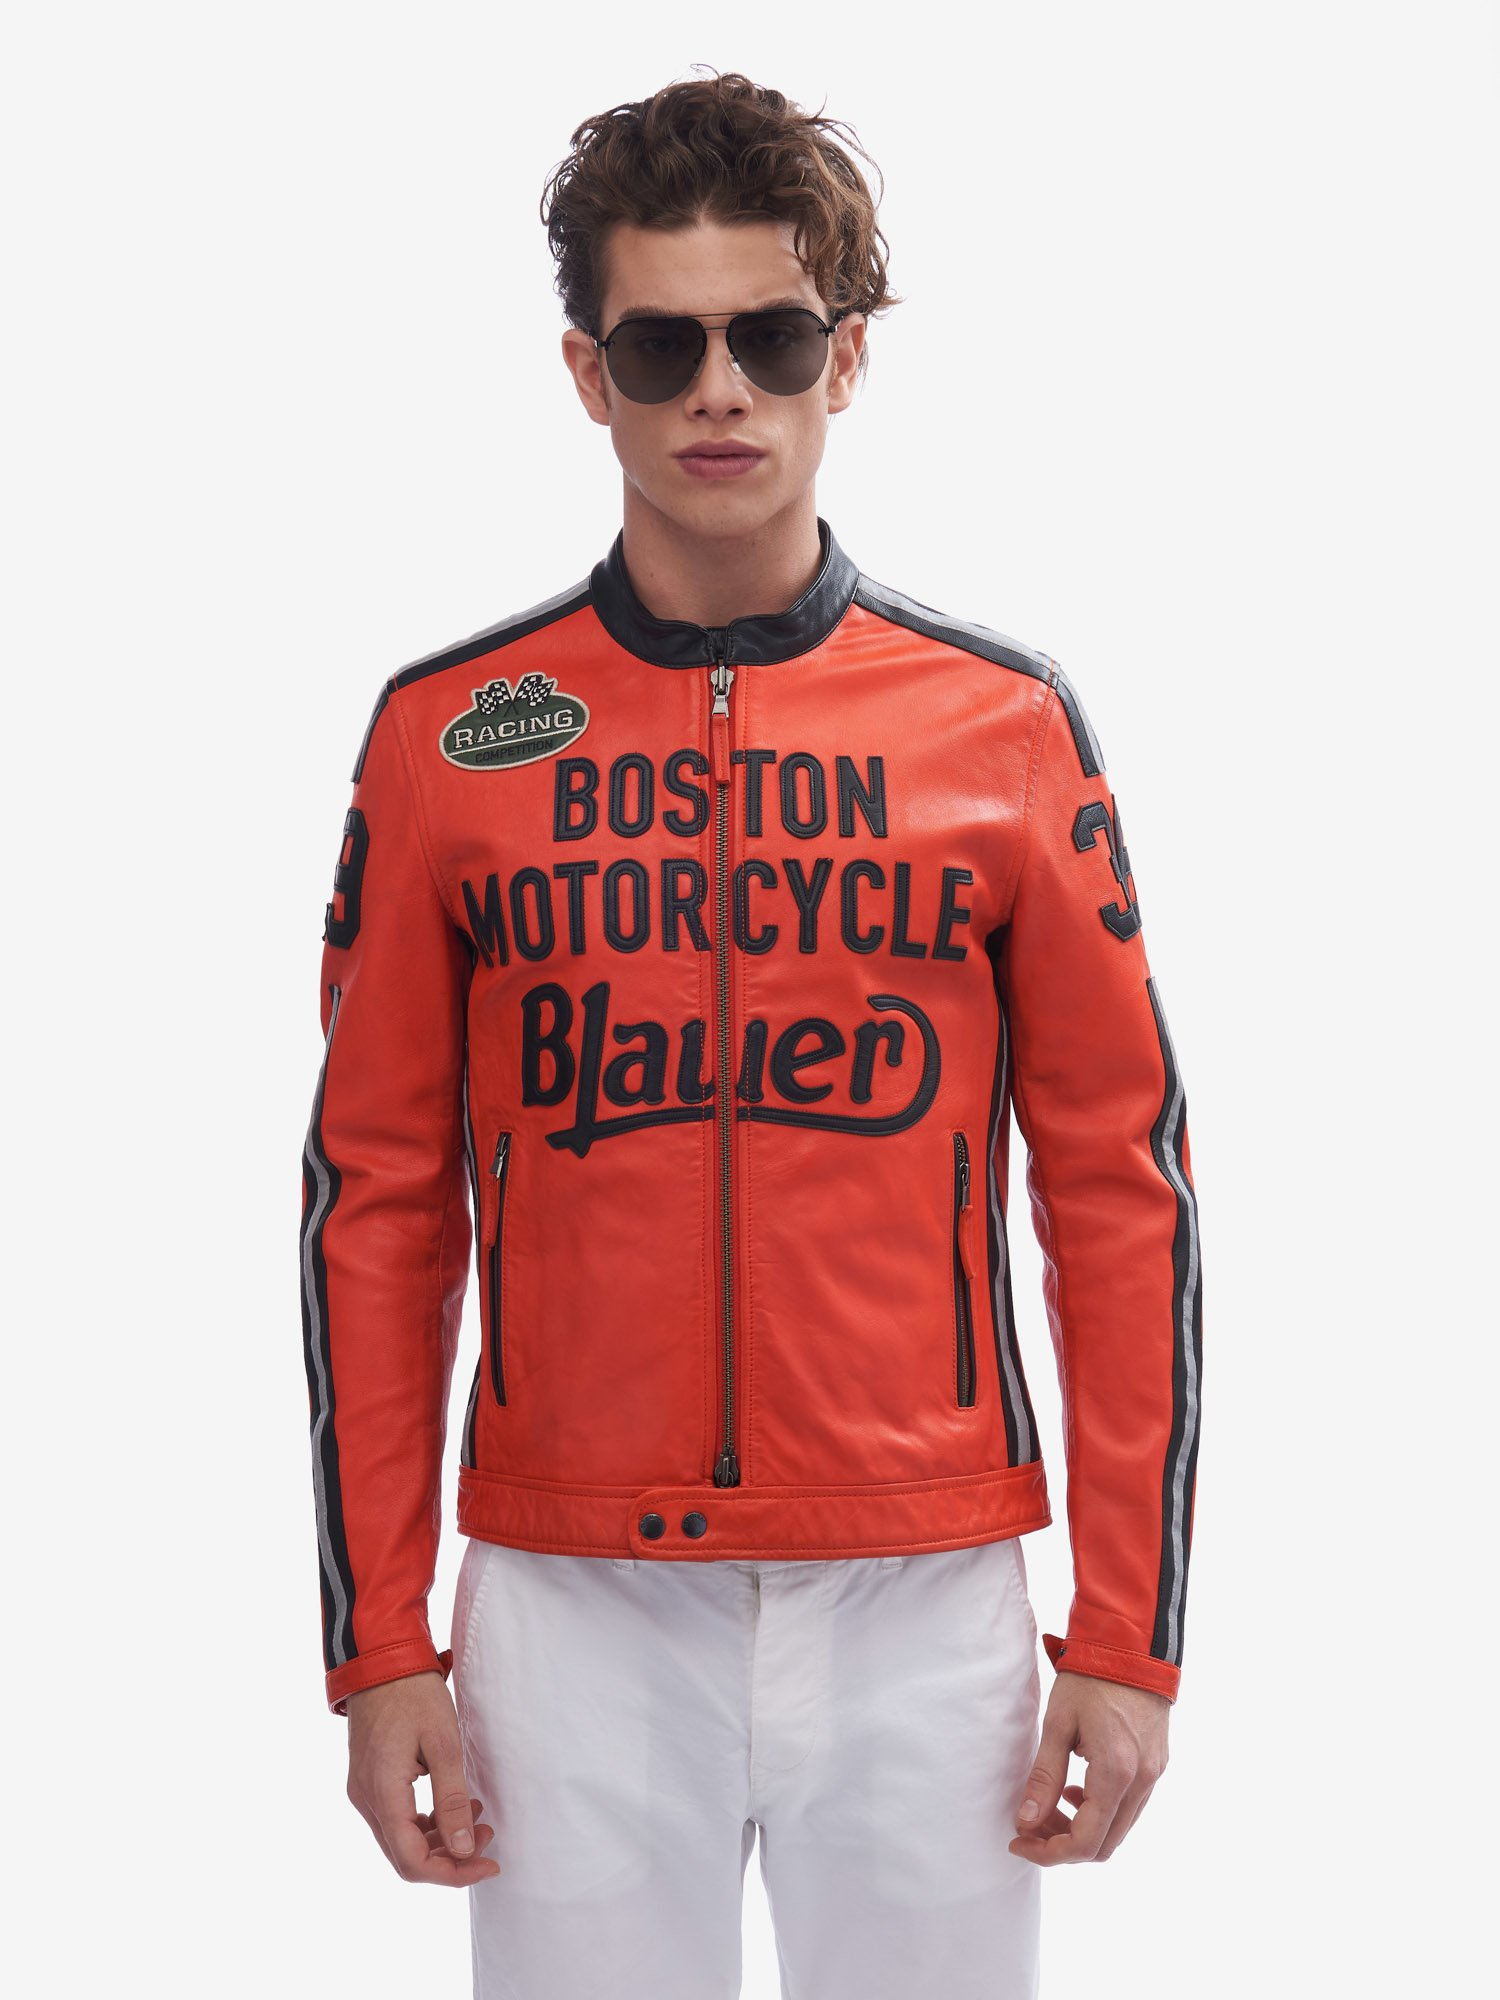 Blauer - BIKER-JACKE RACING COMPETITION KEMP - Bright Orange - Blauer